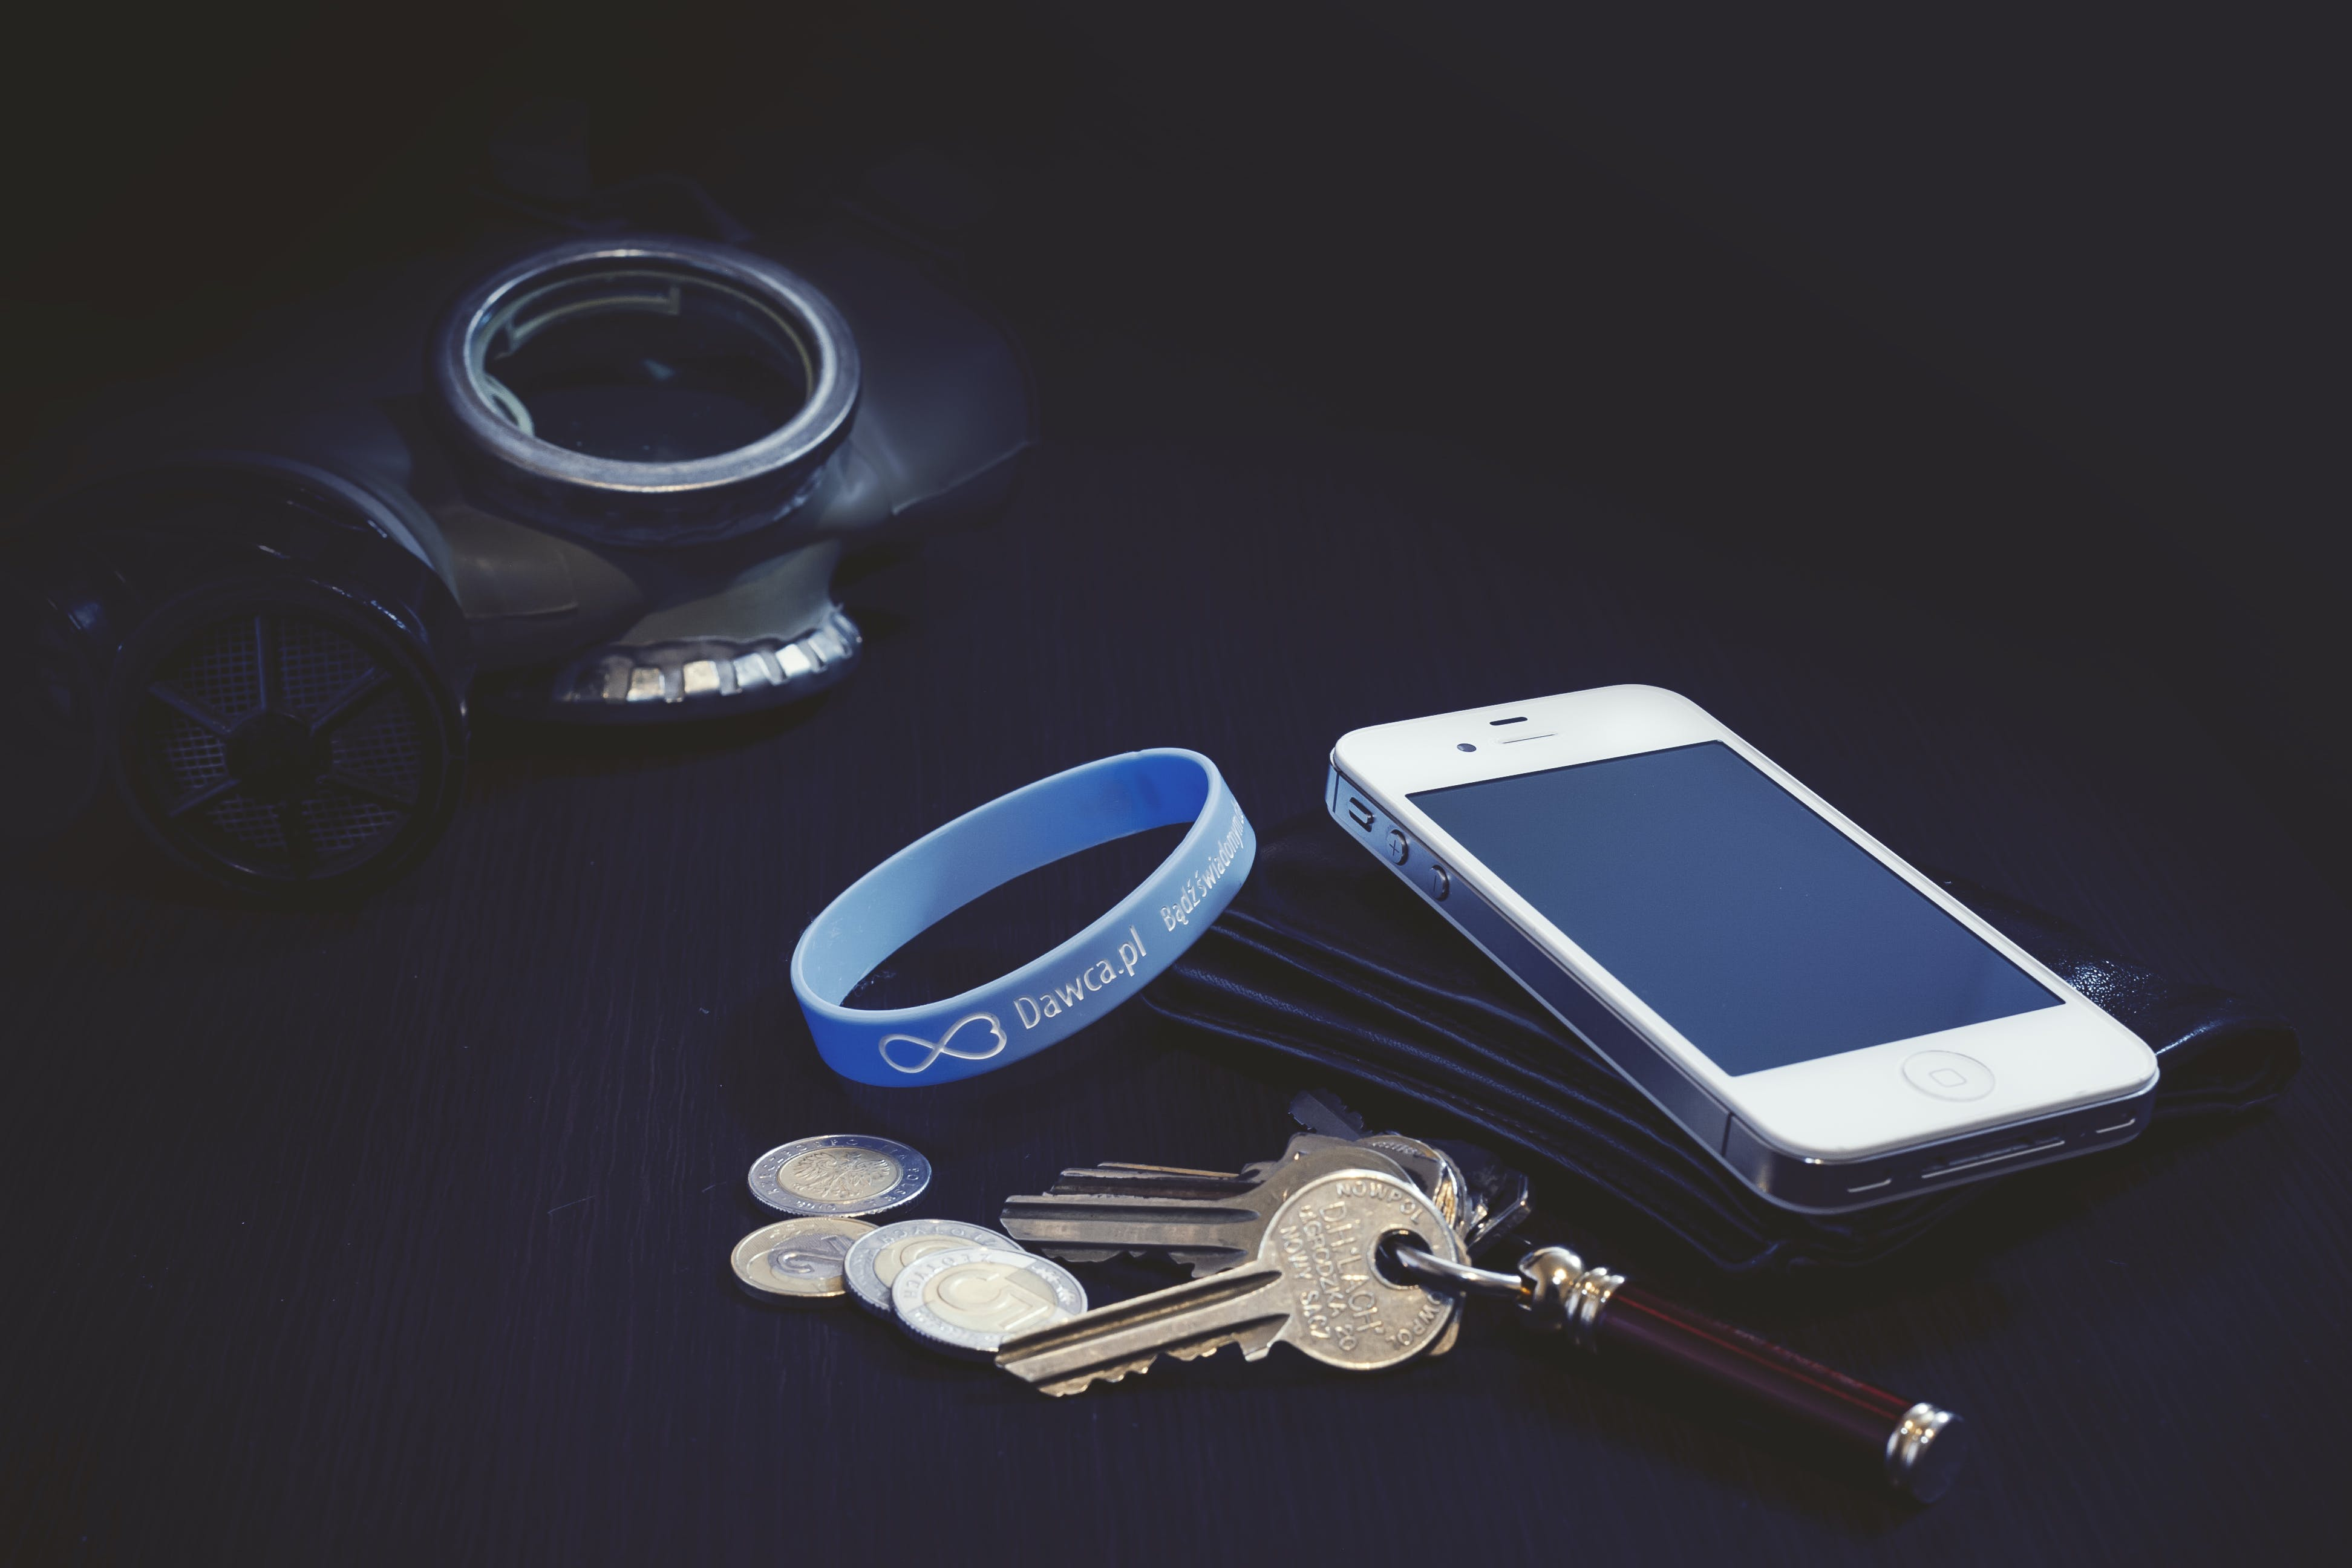 Free stock photo of iphone, desk, keys, coins